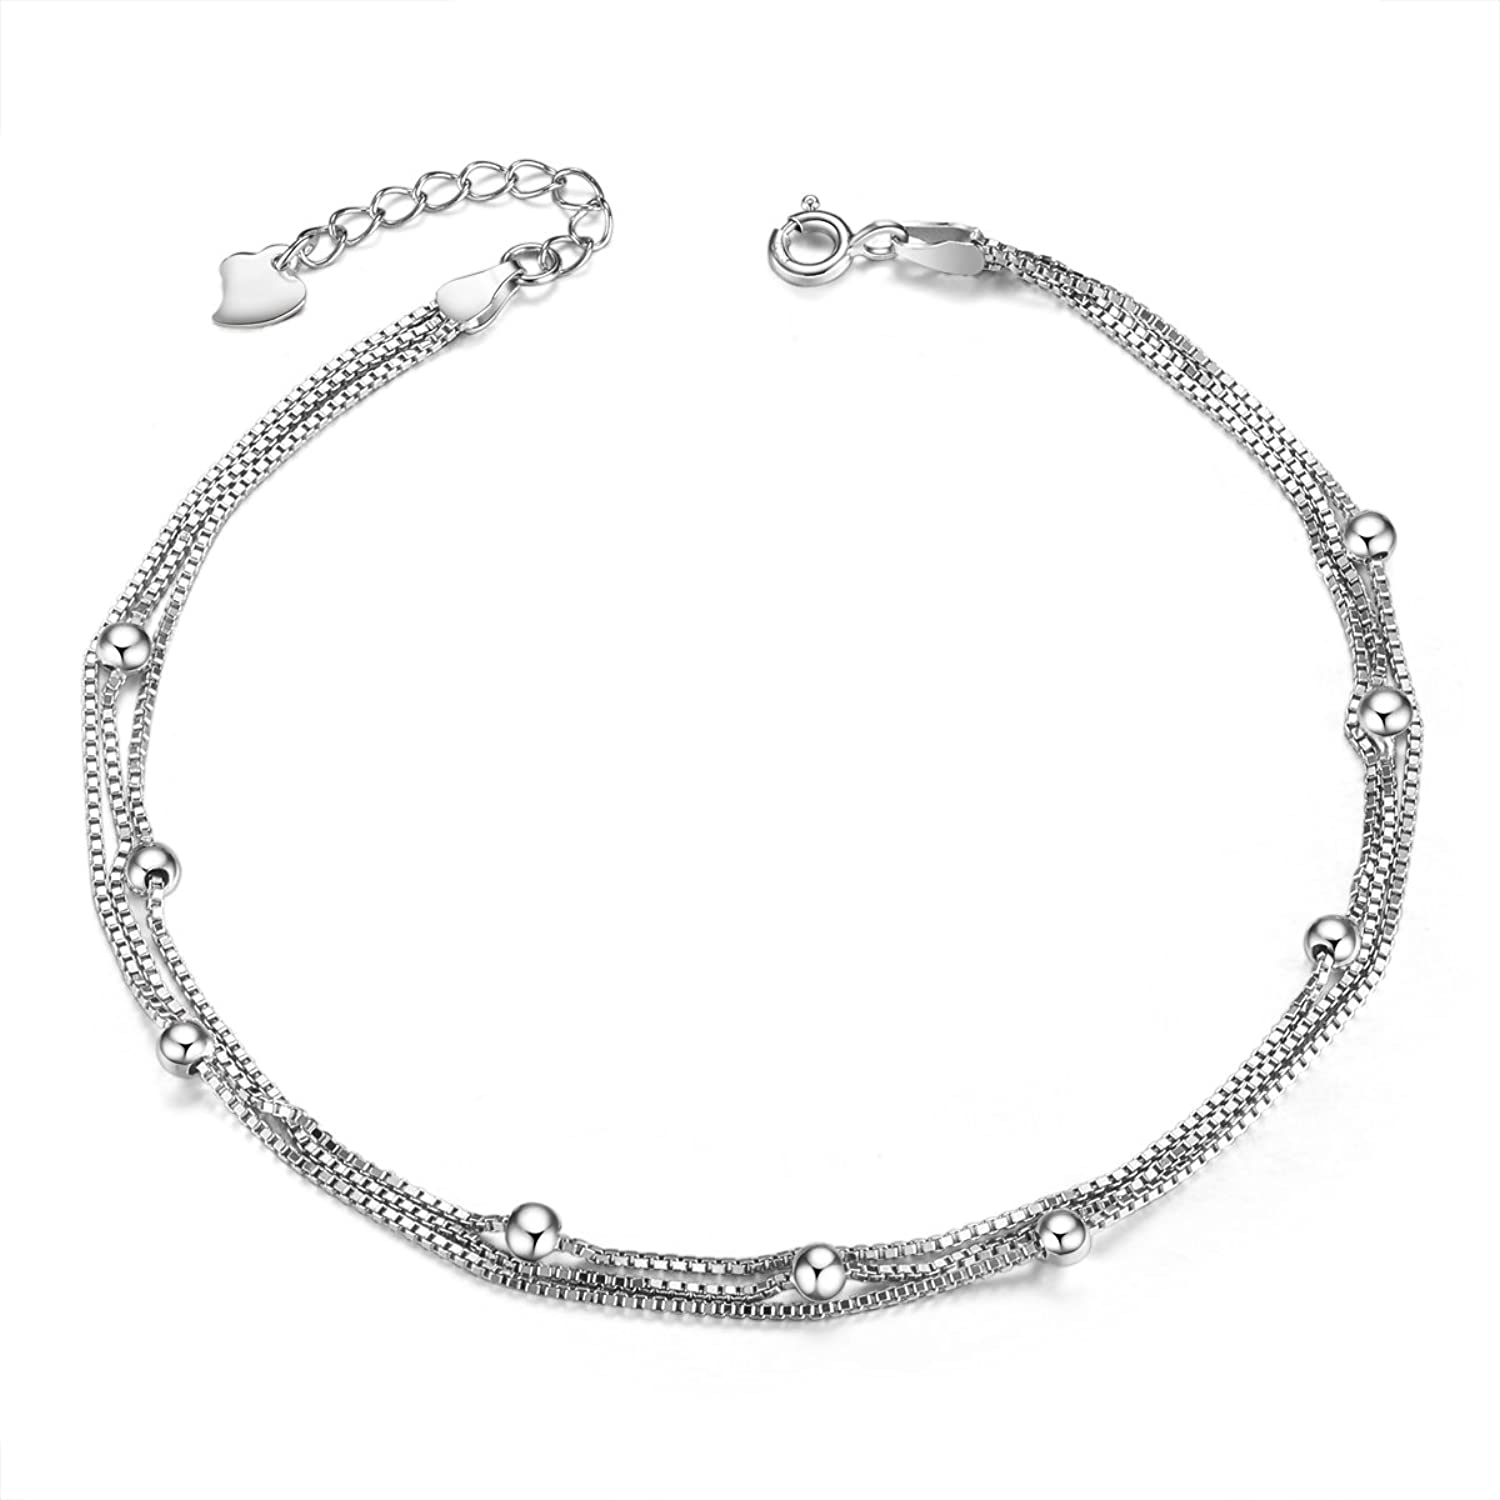 inch others discs india online for buy anklet women sterling shiny contemporary designs anklets silver size